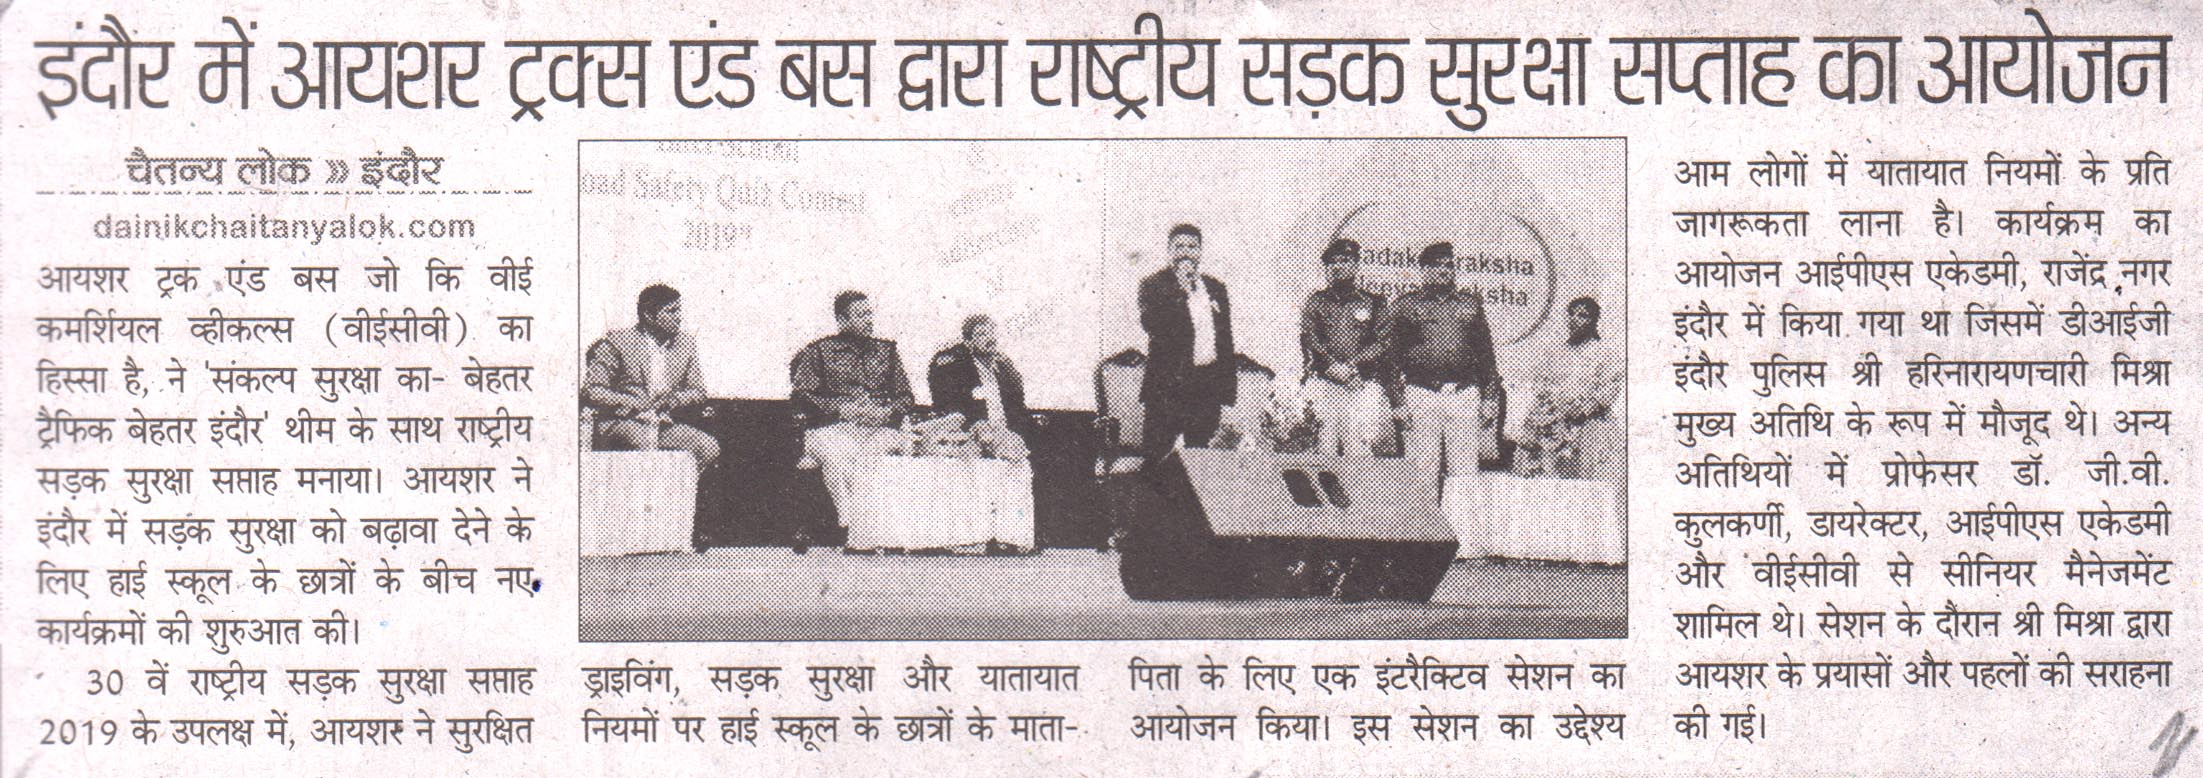 EICHER TRUCKS AND BUSES KICKS OFF NATIONAL ROAD SAFETY WEEK AT INDORE